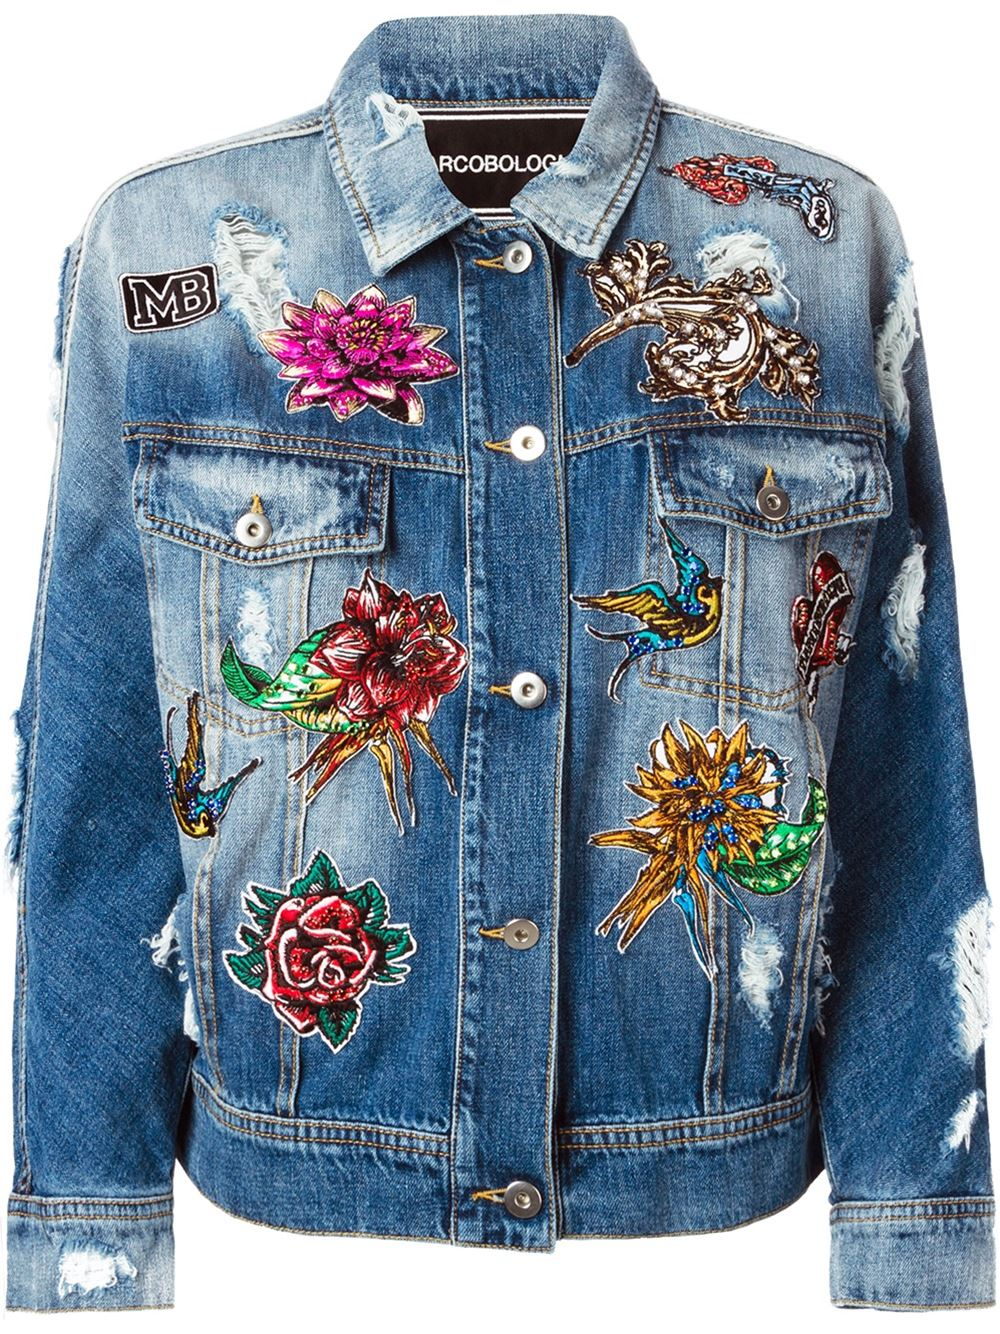 Marco Bologna Embroidered Distressed Denim Jacket In Blue | Lyst